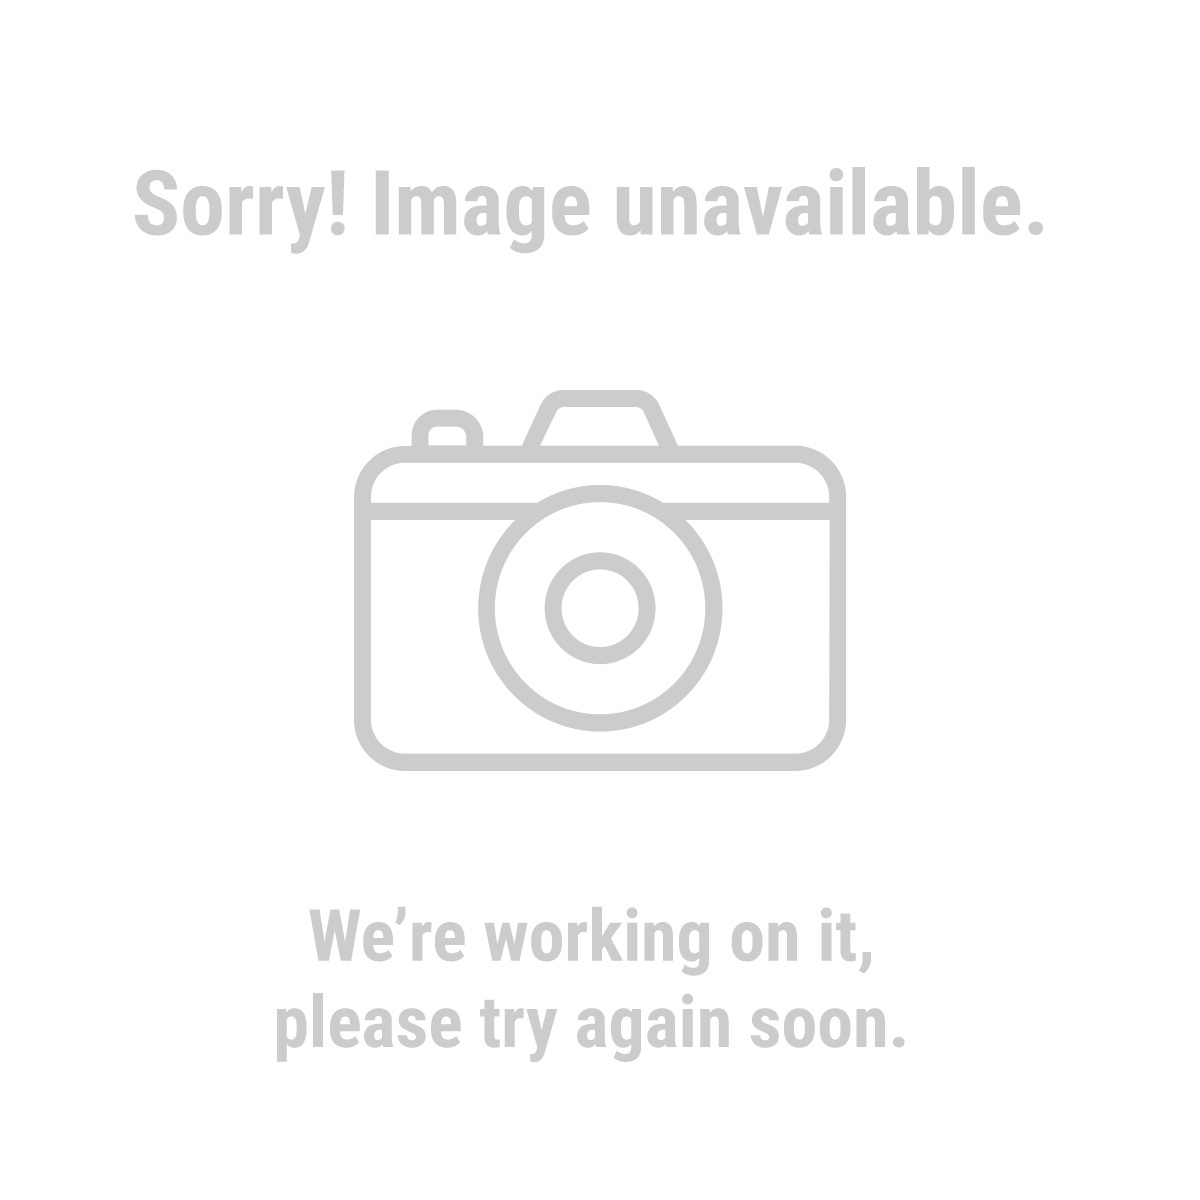 Haul Master Automotive 69869 12 Volt Magnetic LED Towing Light Kit